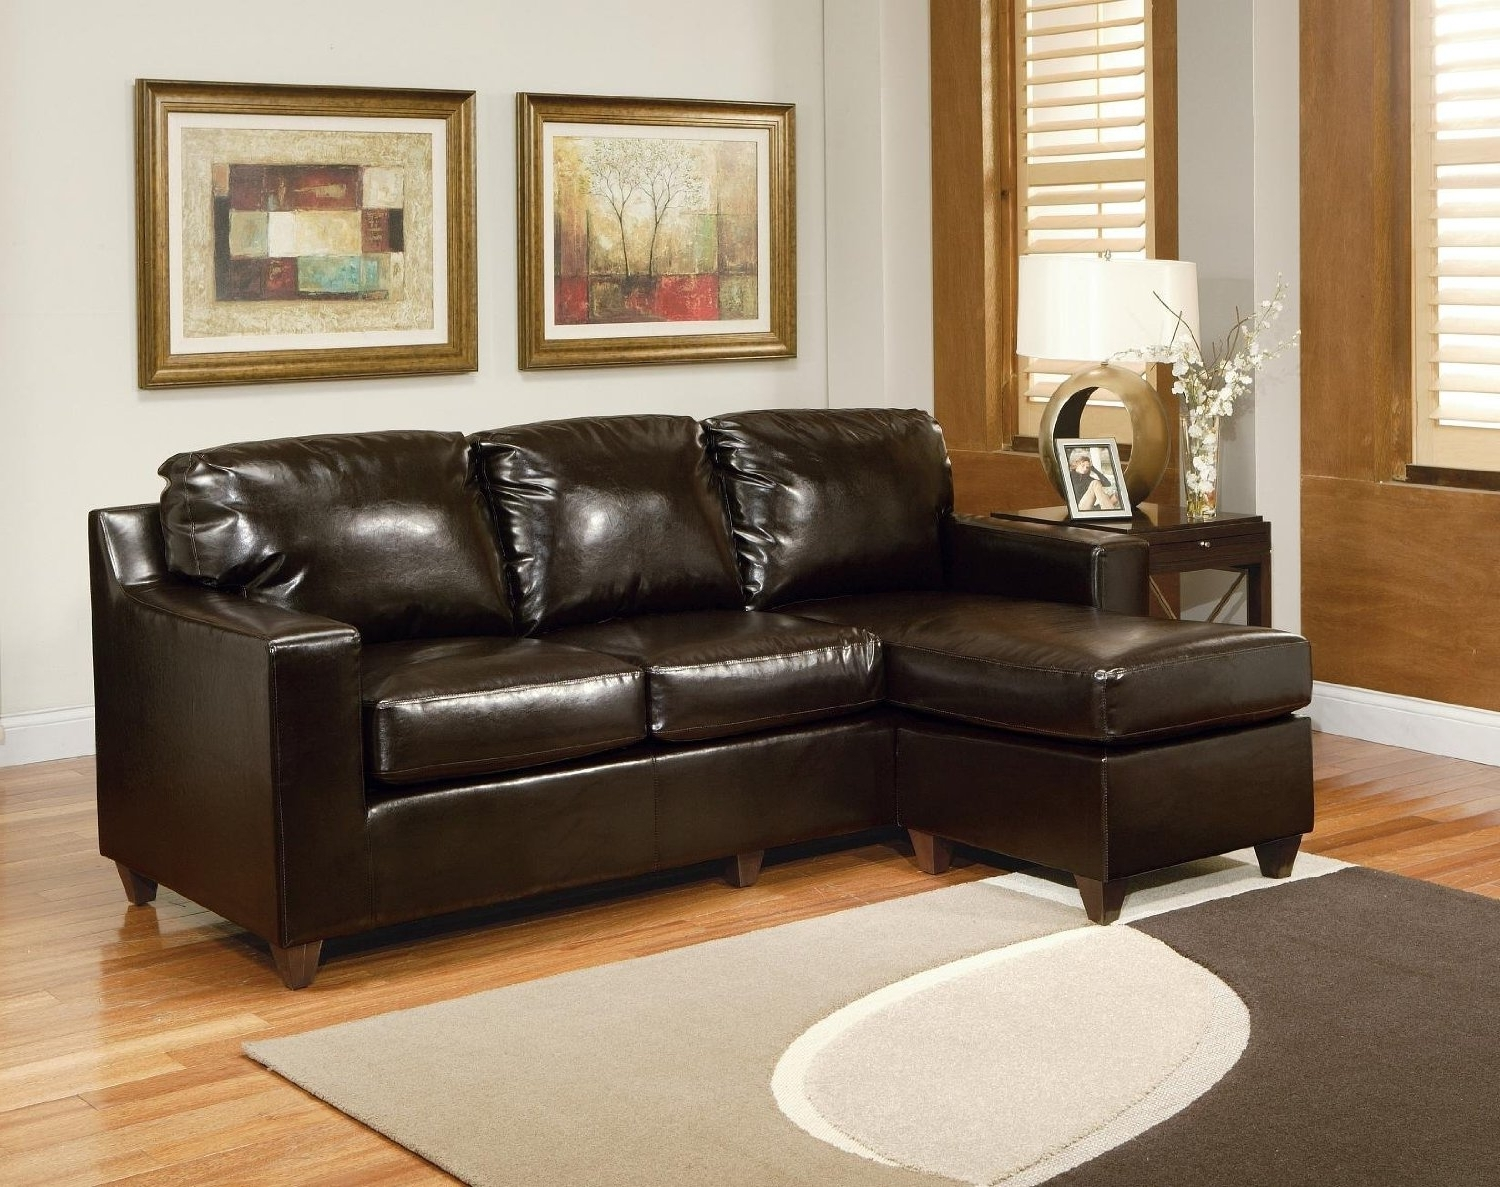 Preferred Small Leather Sectionals With Chaise Regarding Sectional Sleeper Sofa Queen Small Sectional Couch Apartment Size (View 8 of 15)